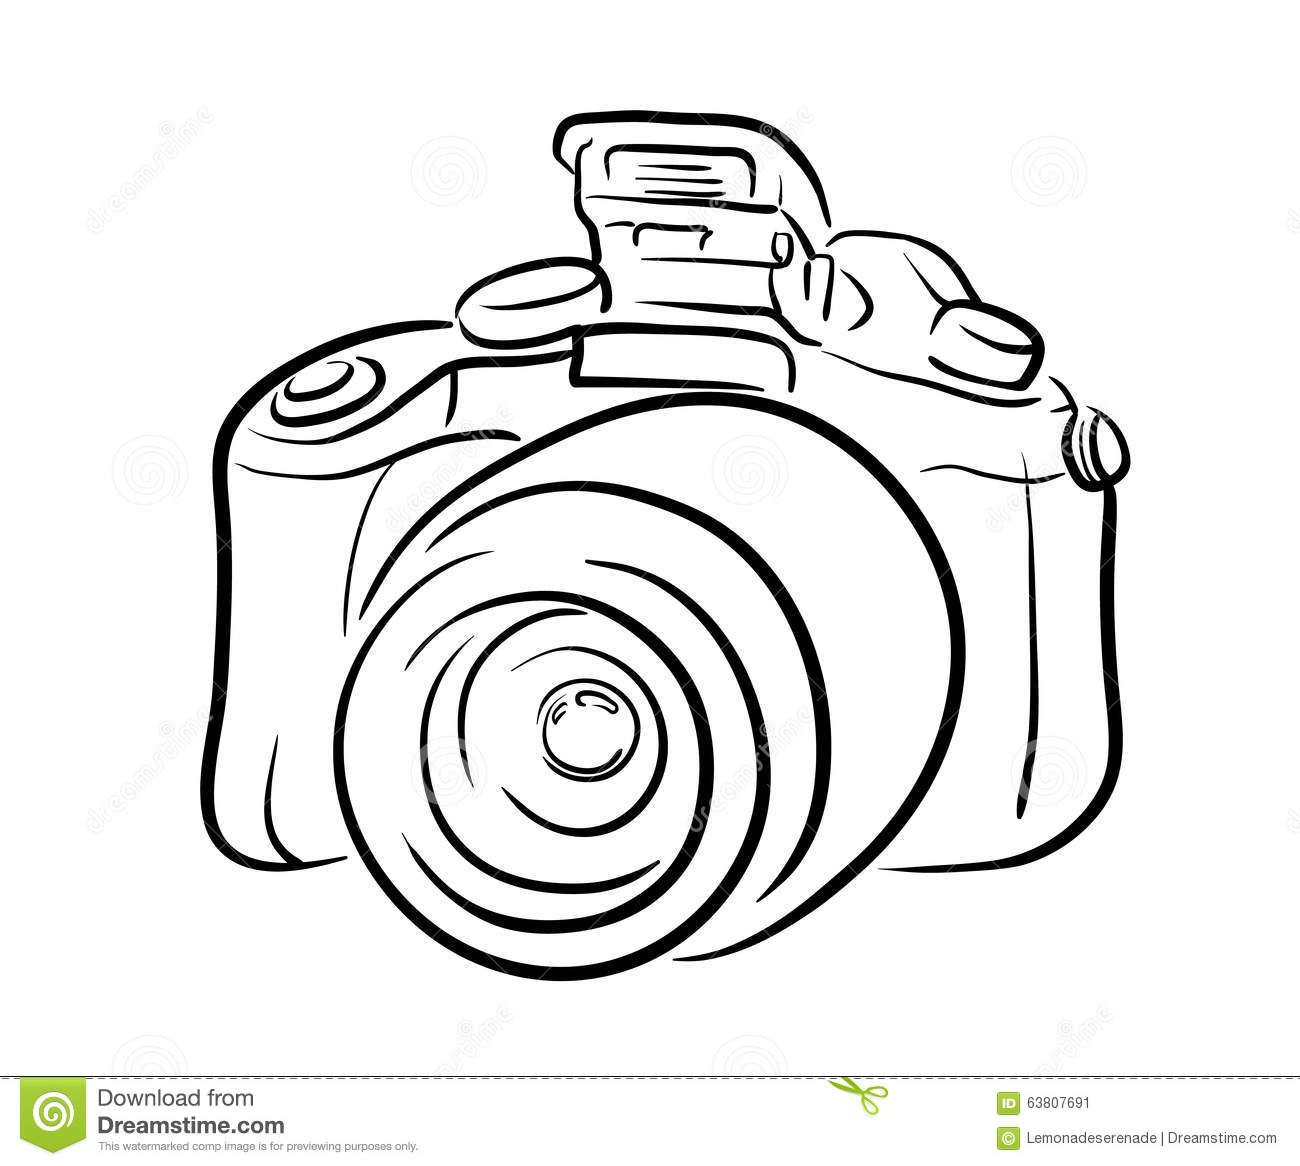 Dslr Camera Line Art Stock Vector